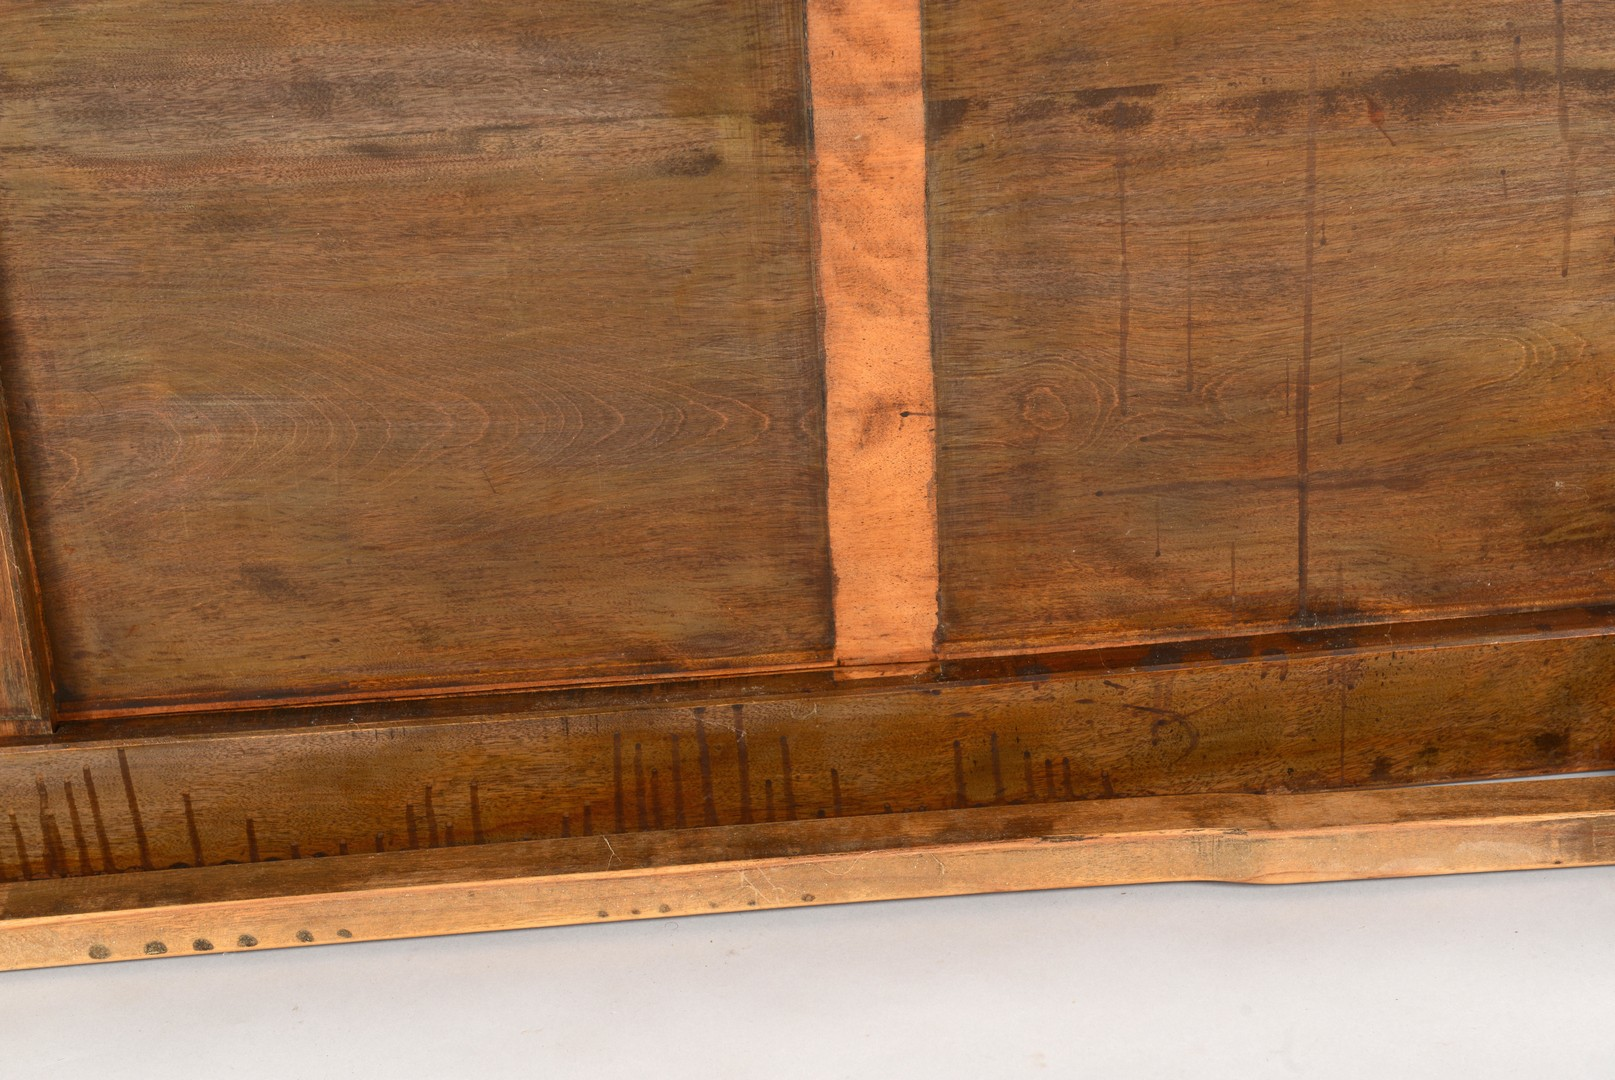 Lot 406: Chinese Hardwood Low Table